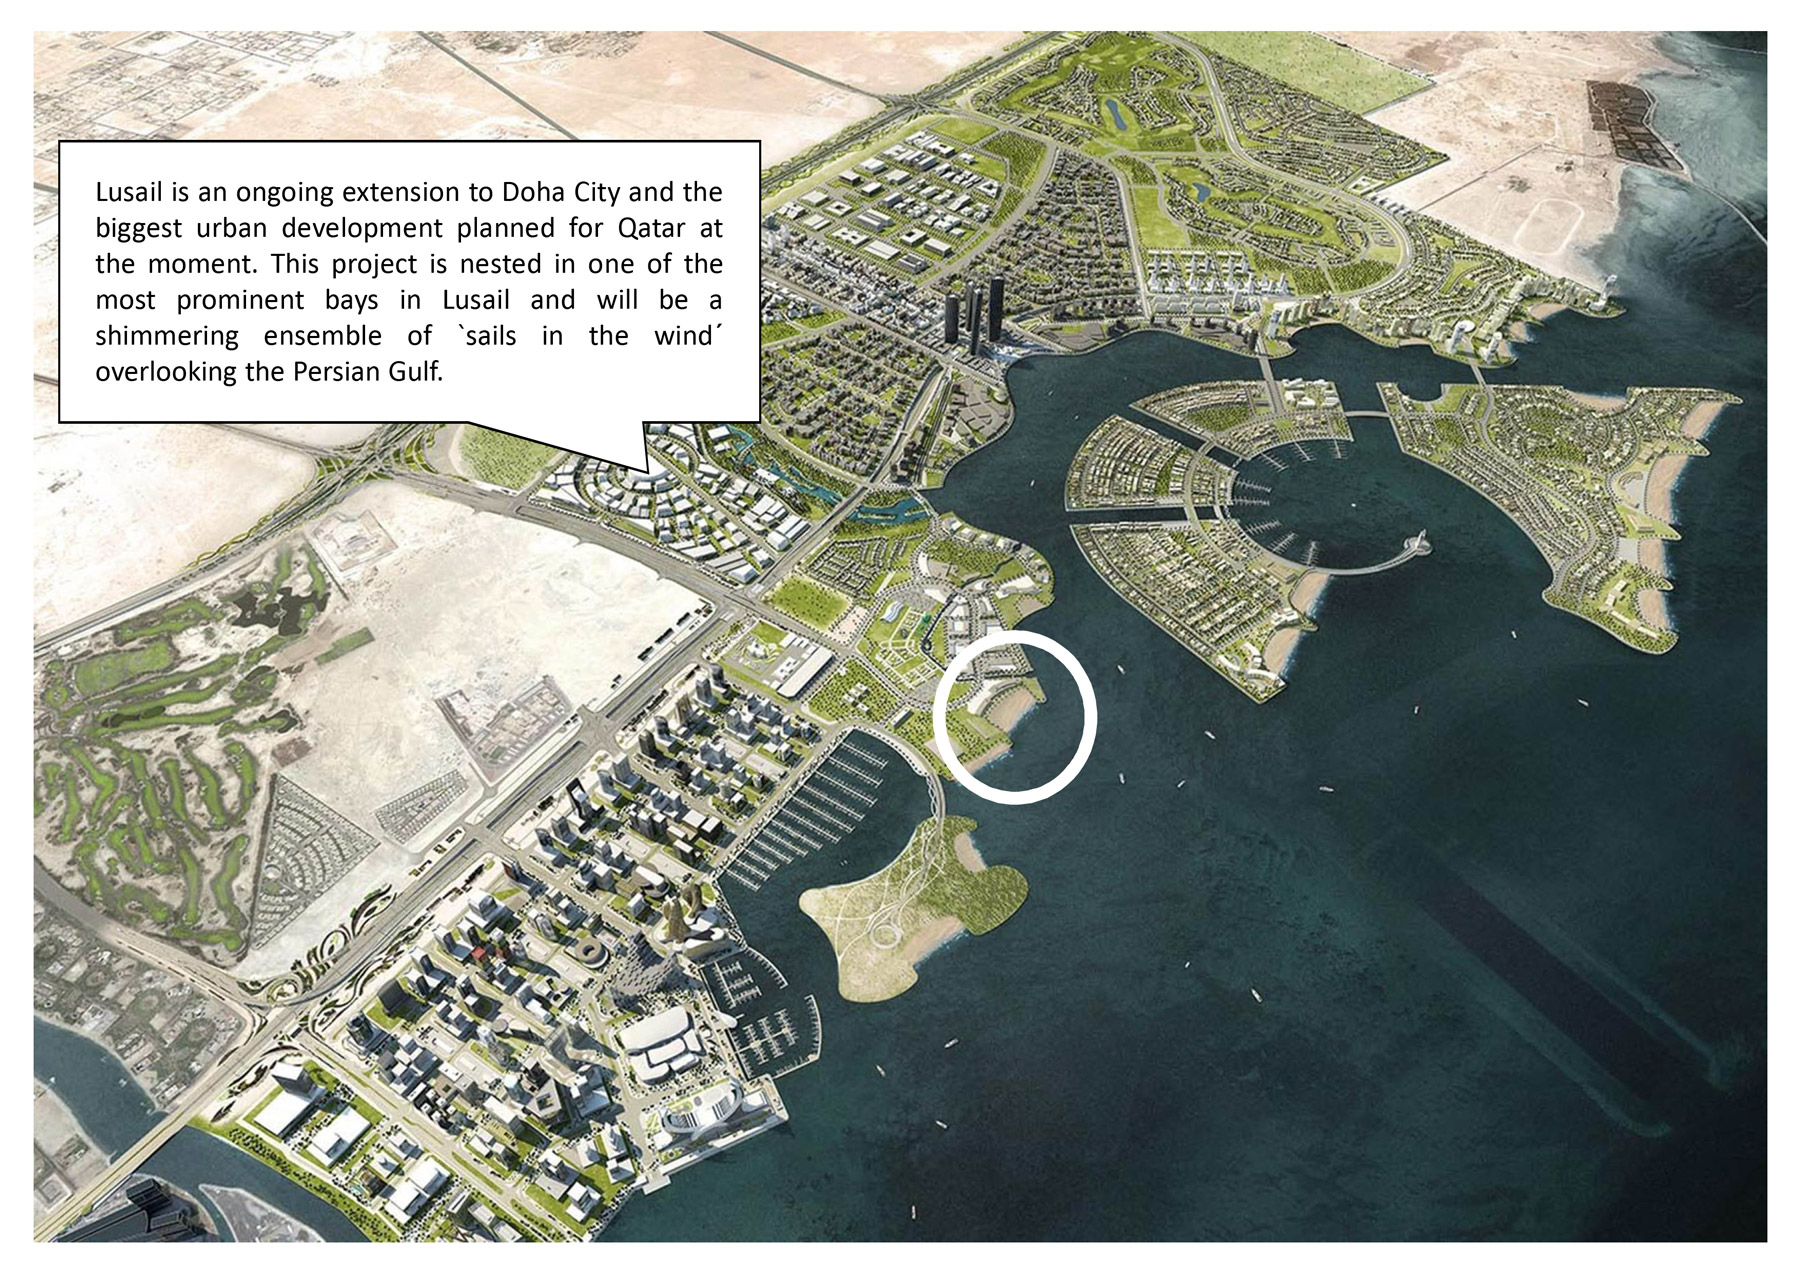 161_Lusail_S1S2_Slide_04